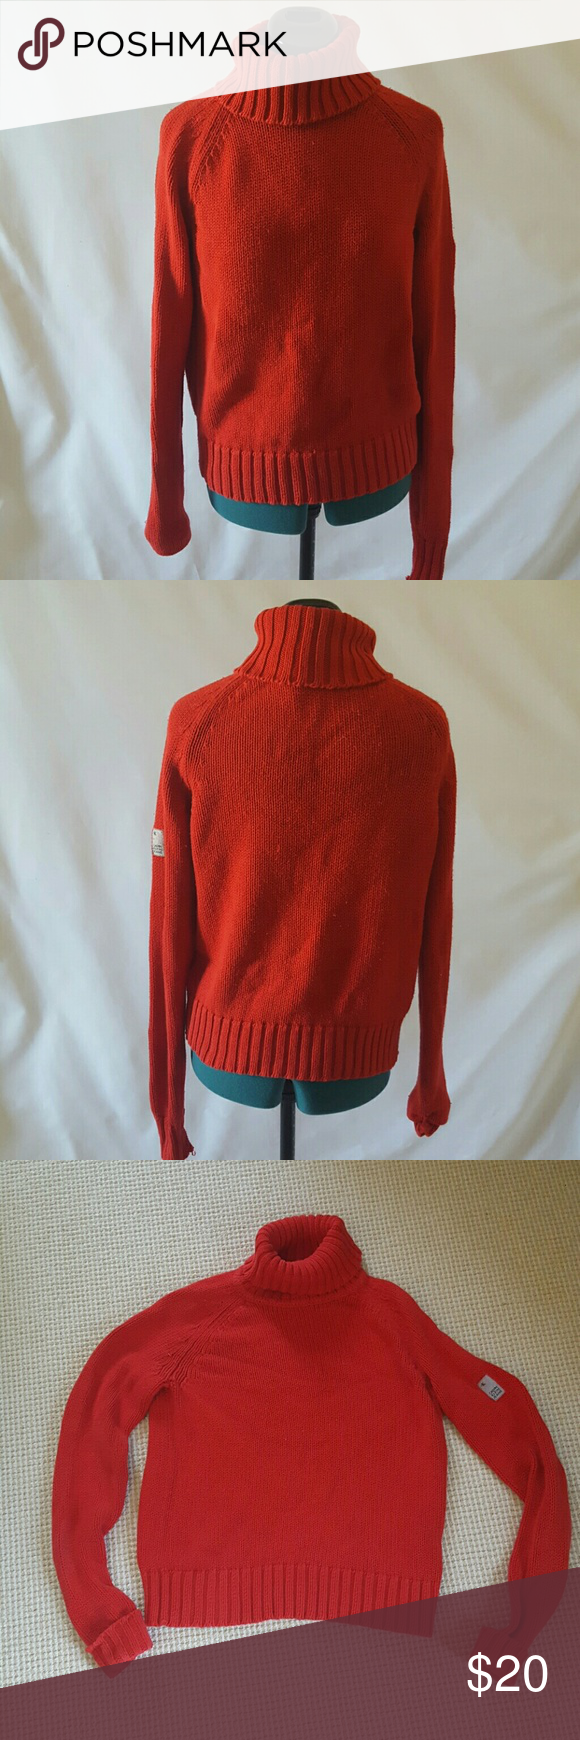 Calvin Klein red turtleneck sweater size S Calvin Klein red ...